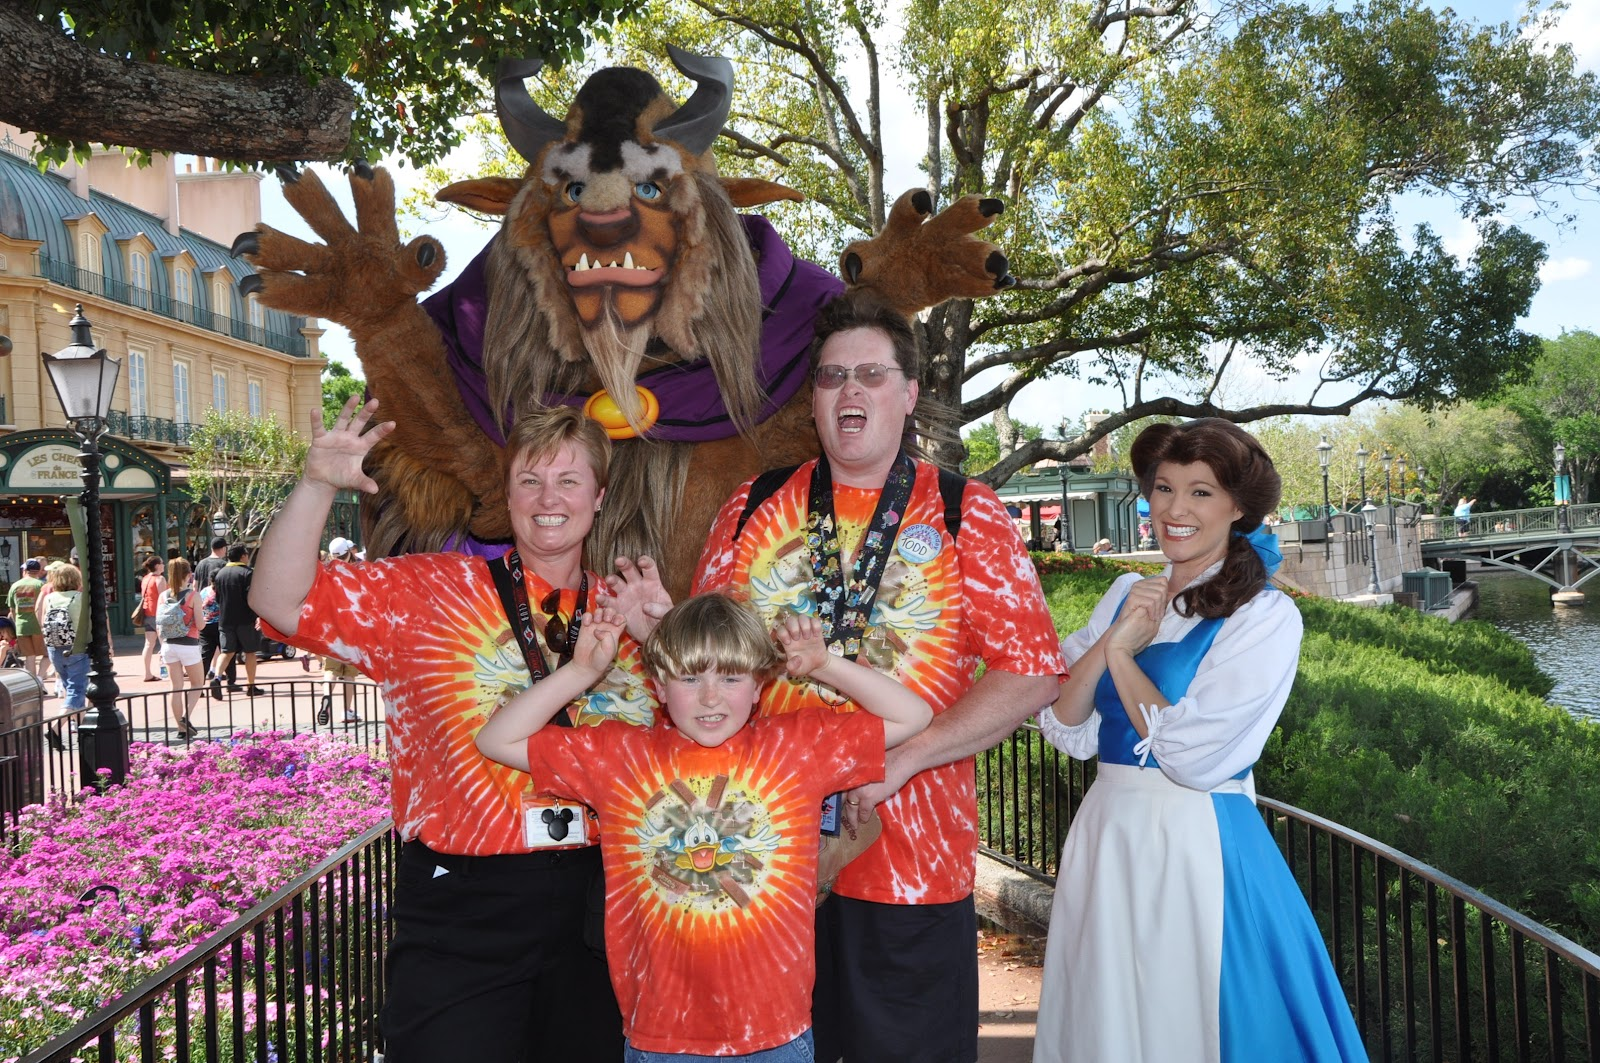 walt disney world character meet greet locations